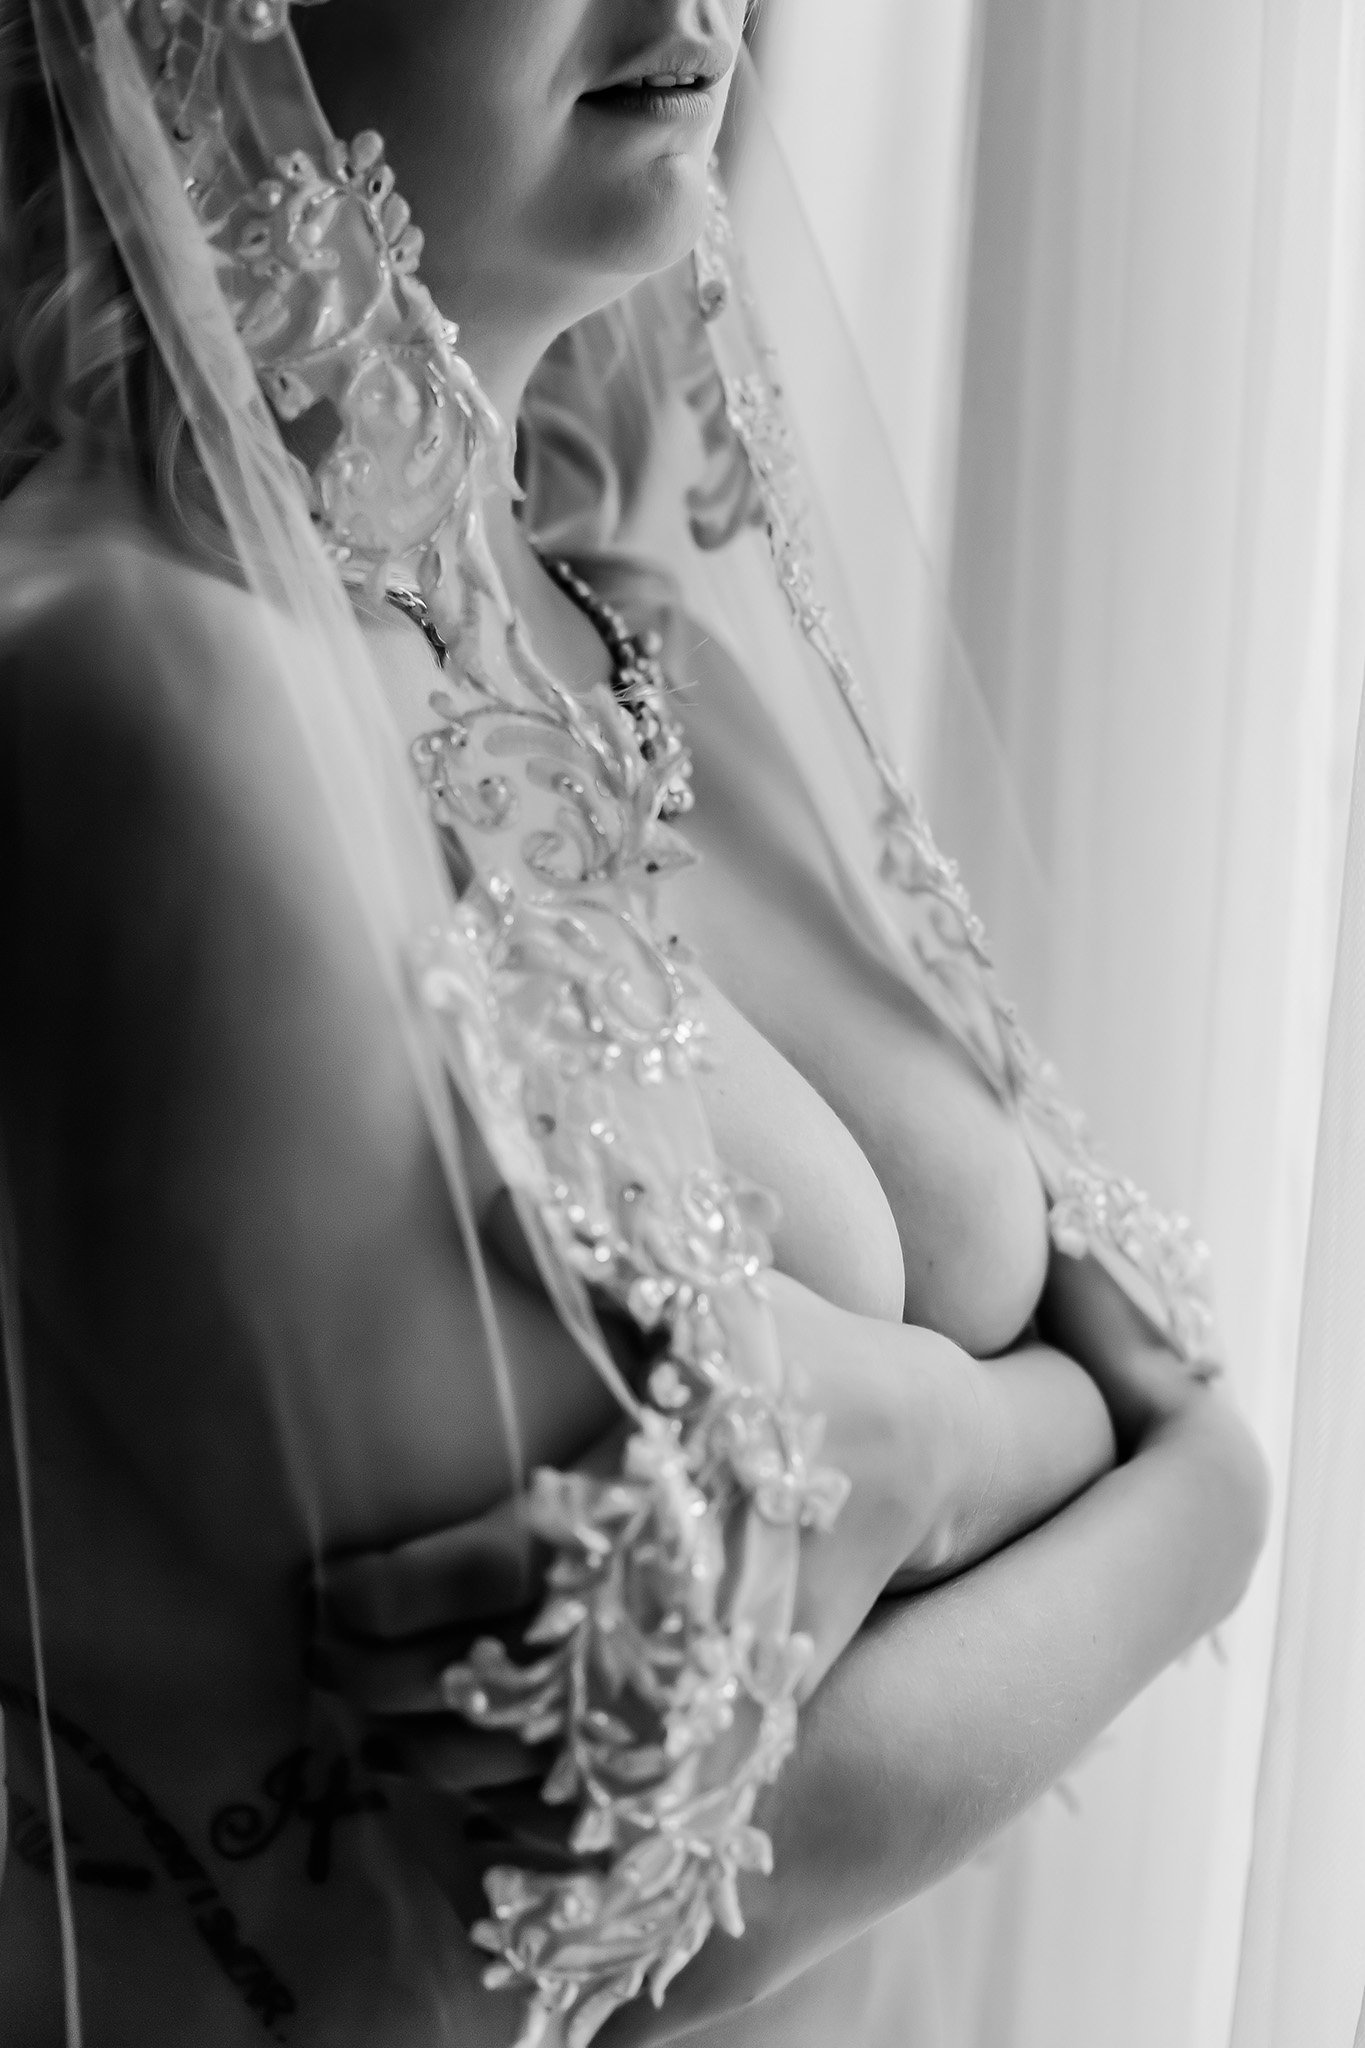 Bridal boudoir photo in black and white